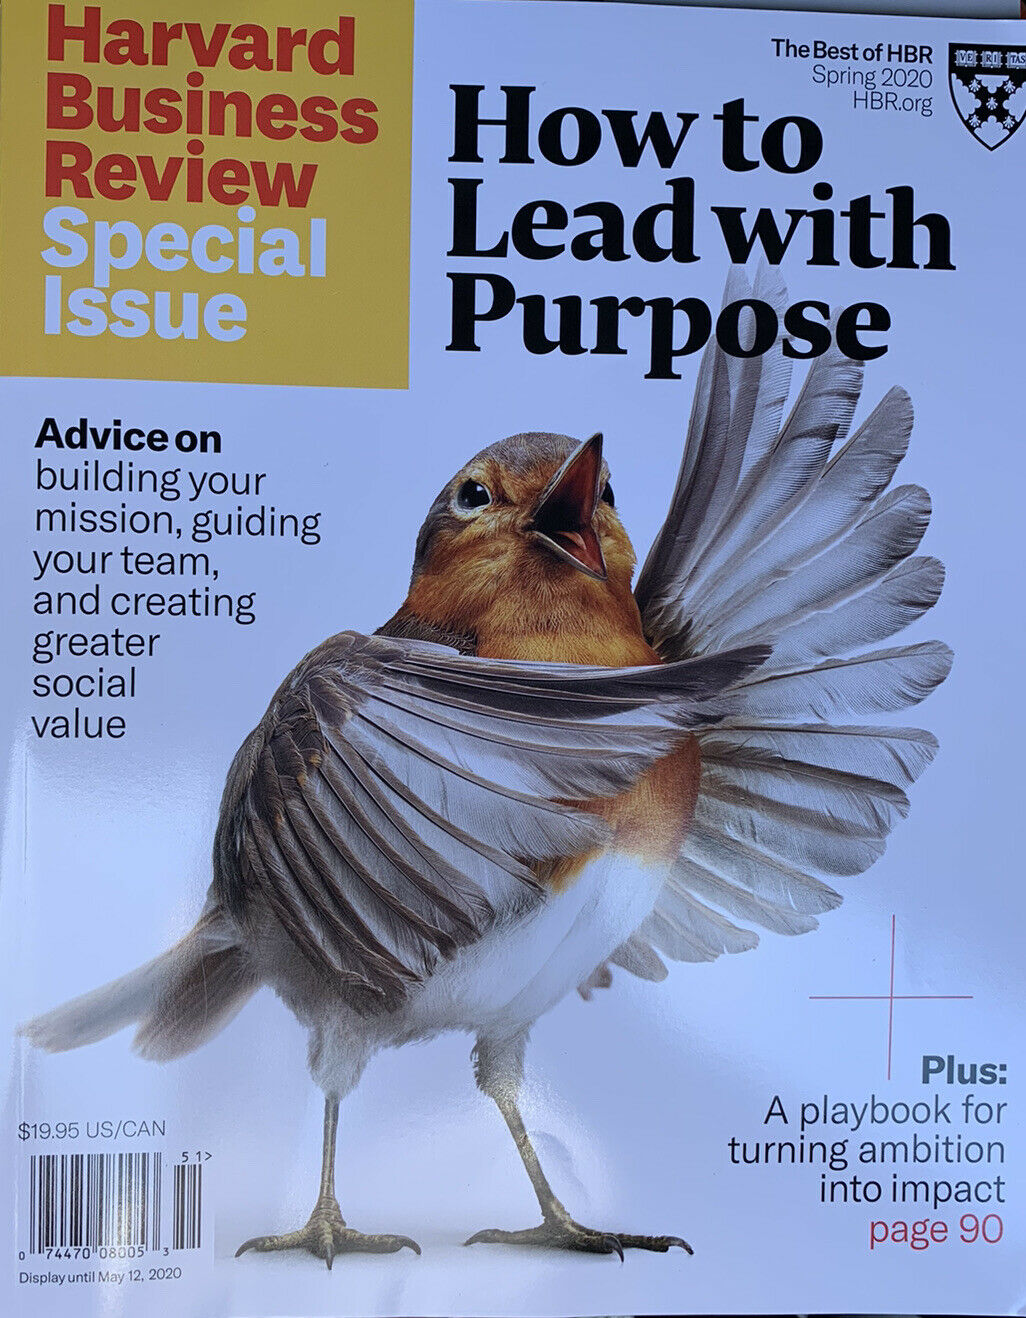 Harvard Business Review Special Spring 2020 How to Lead with Purpose 132 Pages 2